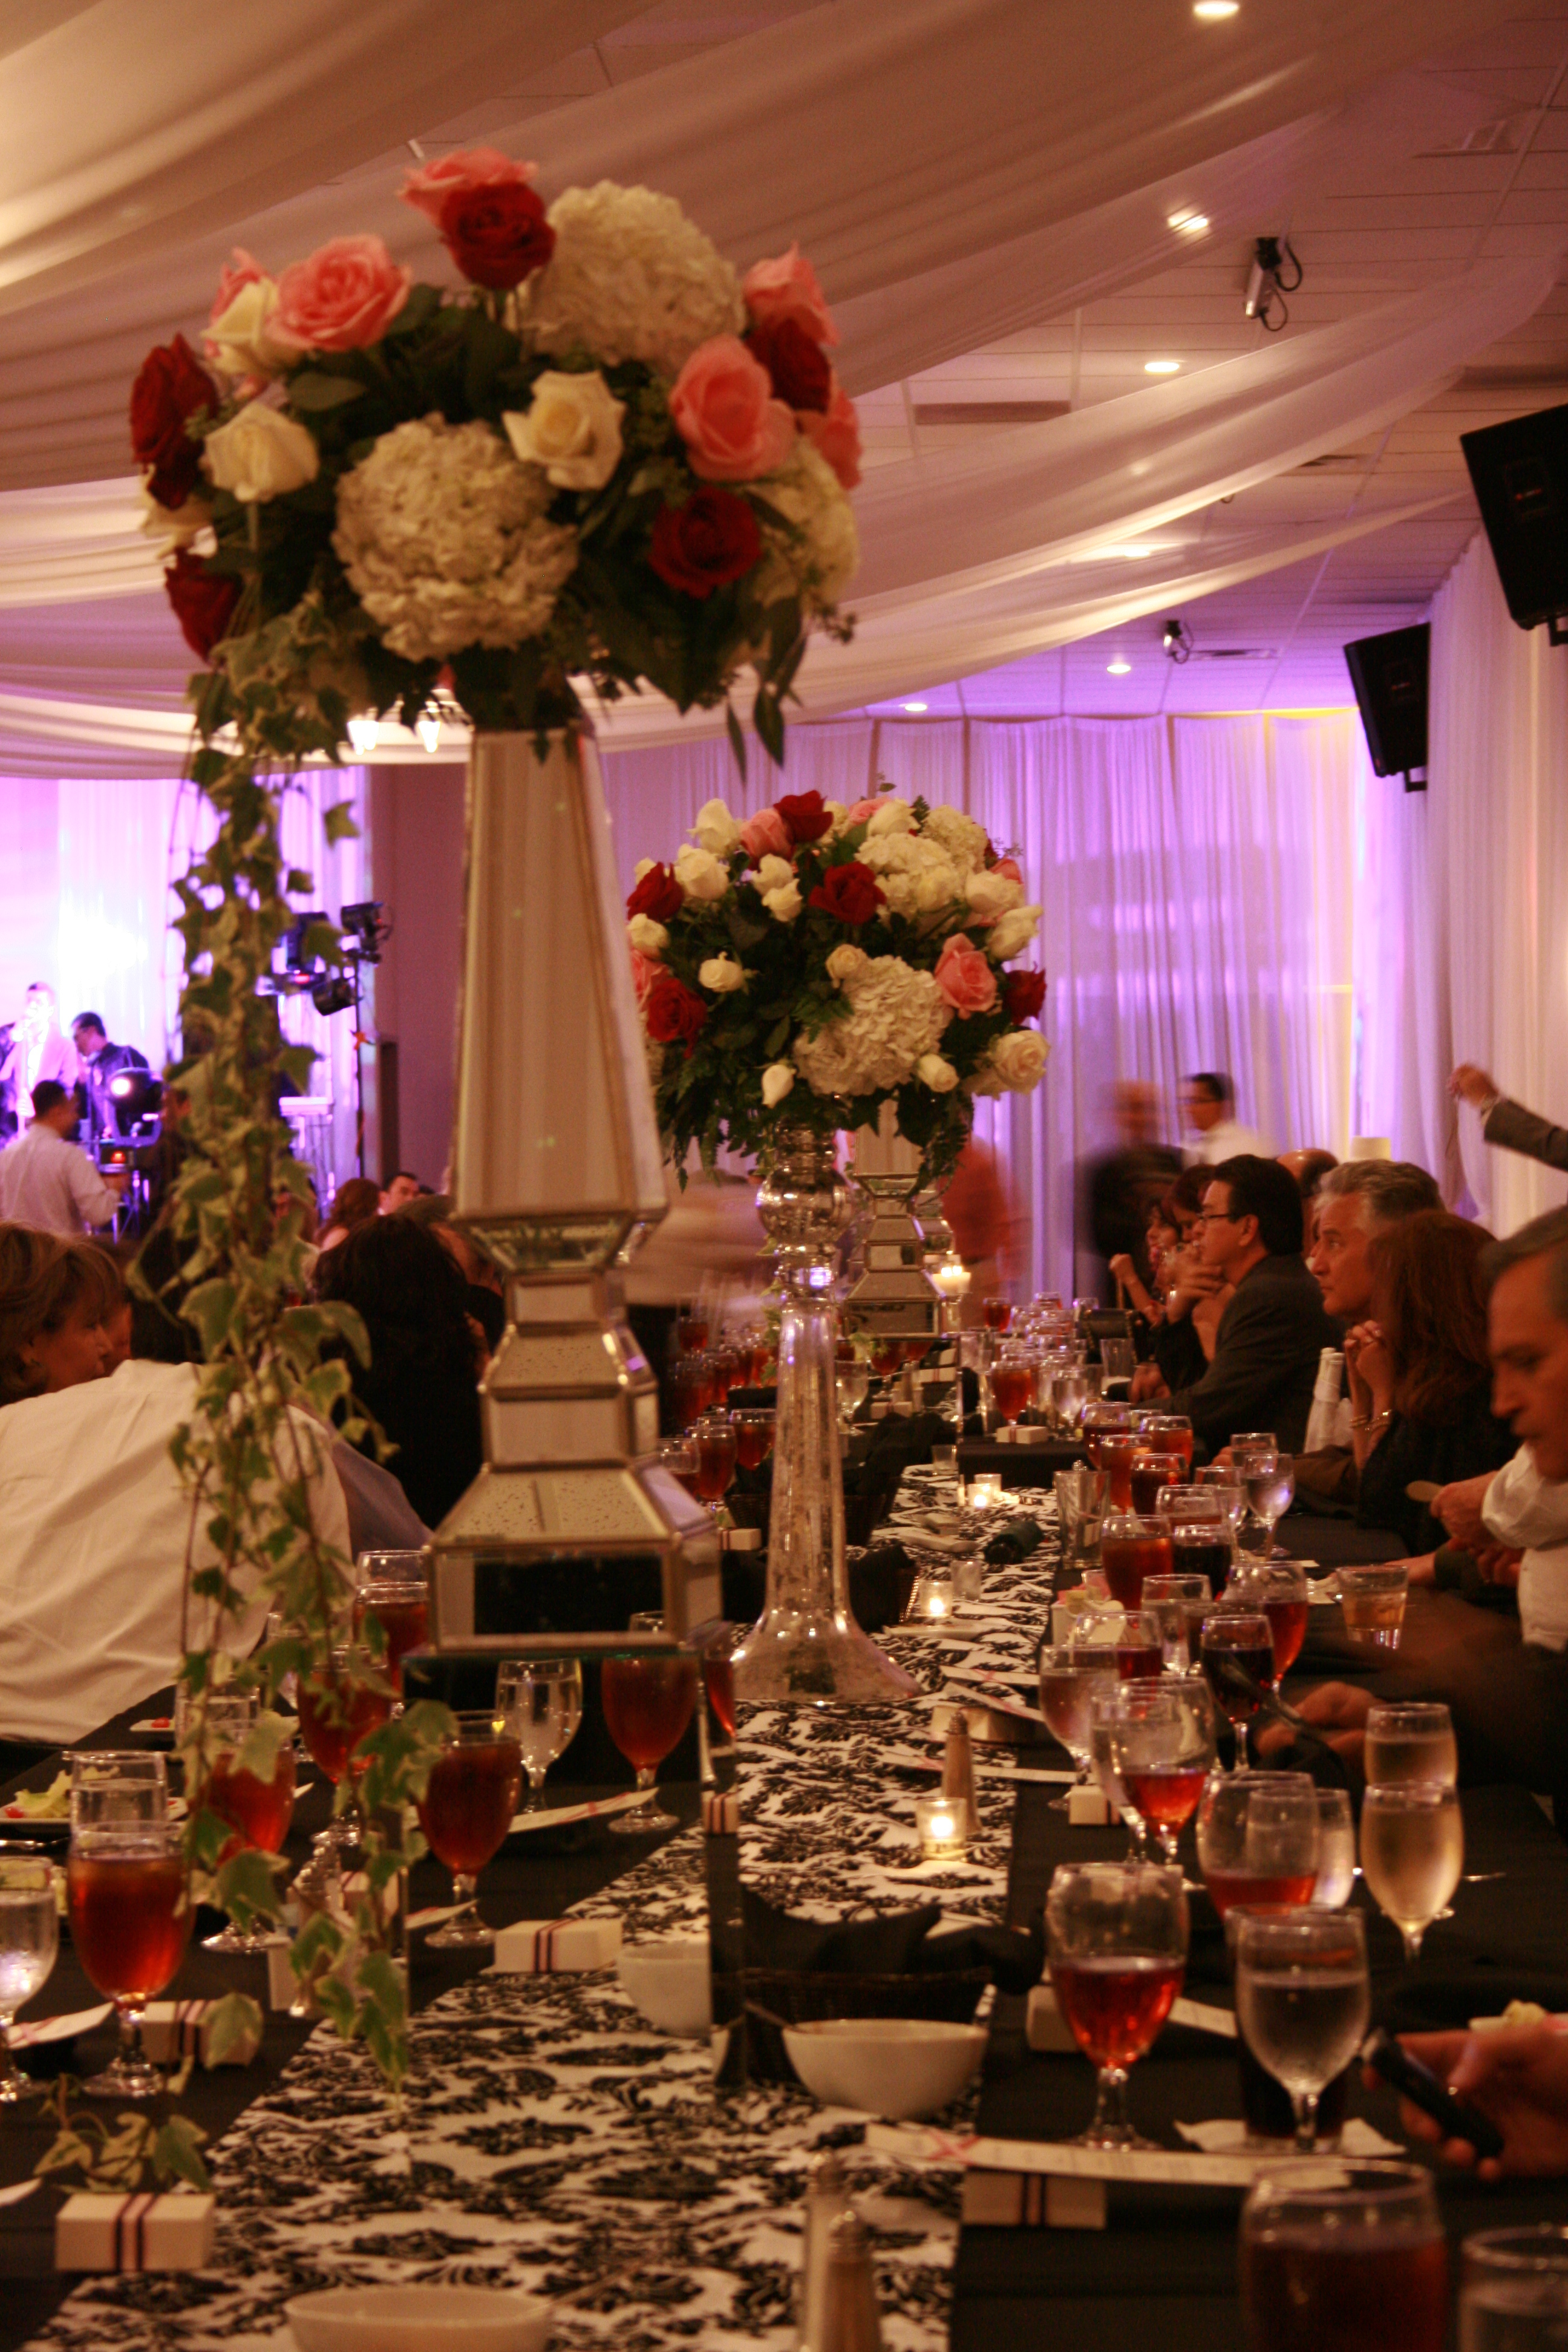 Reception, Flowers & Decor, white, pink, black, silver, Centerpieces, Flowers, Centerpiece, Table, And, Runner, Damask